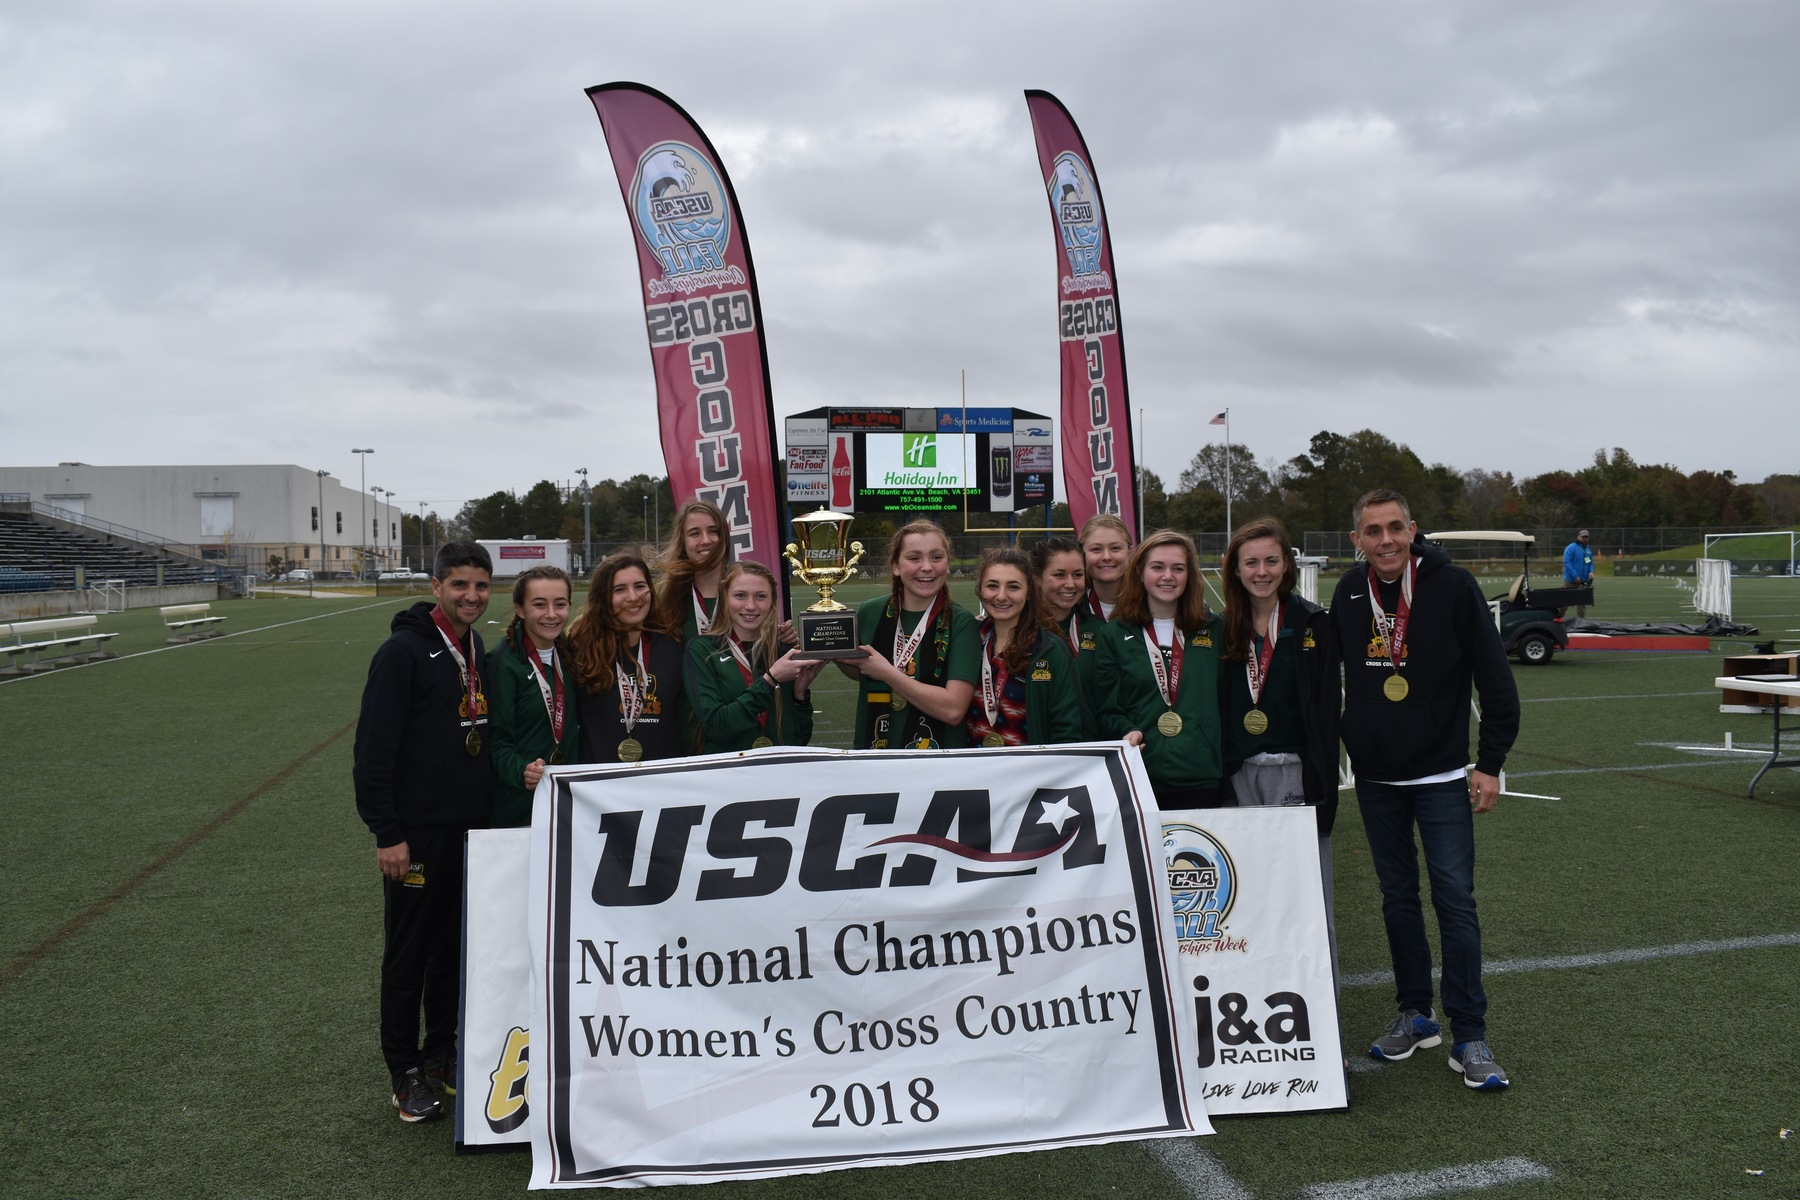 SUNY ESF Wins 2018 USCAA Women's Cross Country National Championship; Men Take Runner-Up